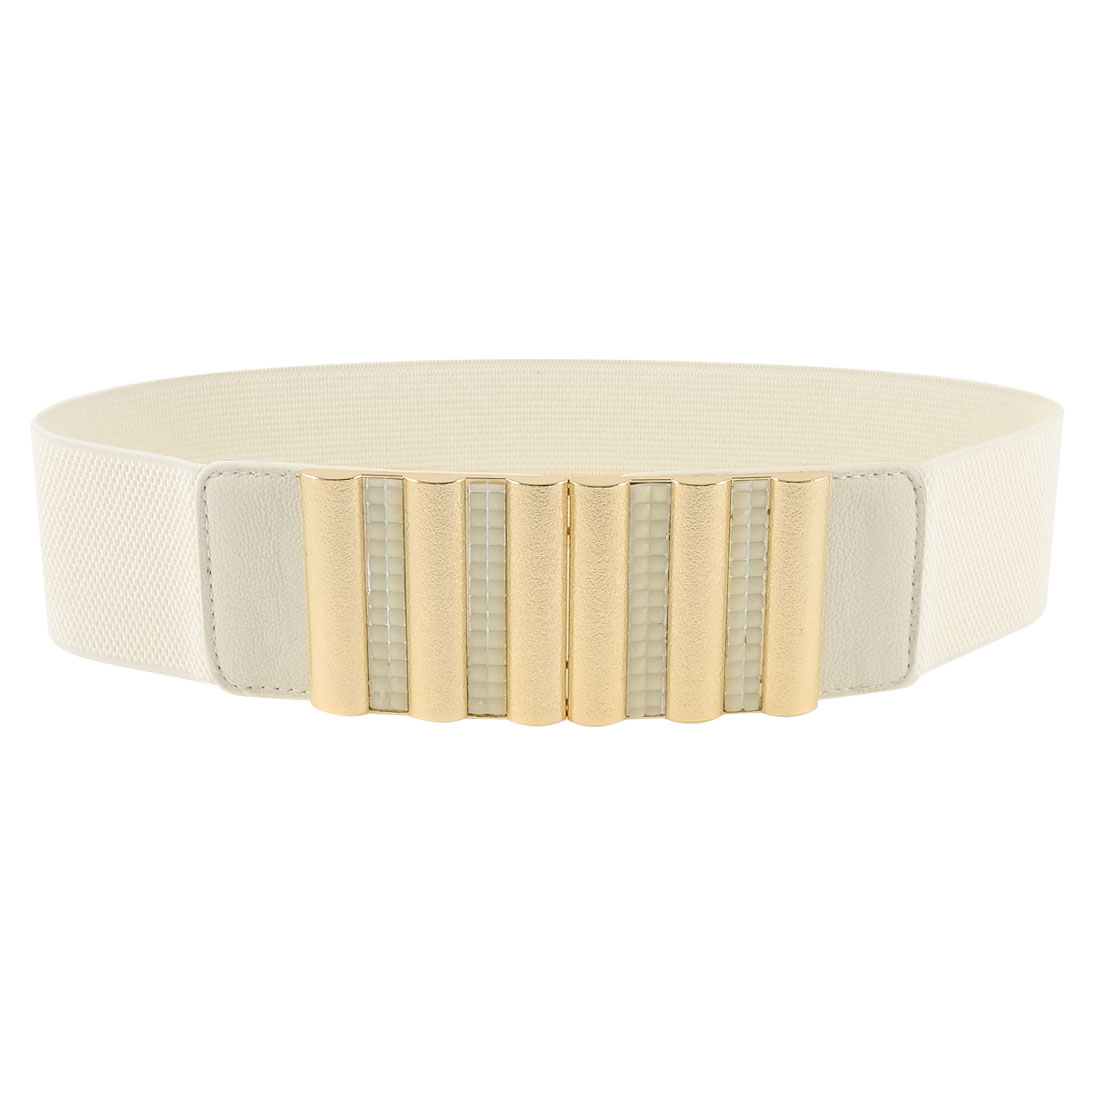 Lady Interlocking Closure Plastic Faceted Beads Detail Beige Stretchy Waist Belt